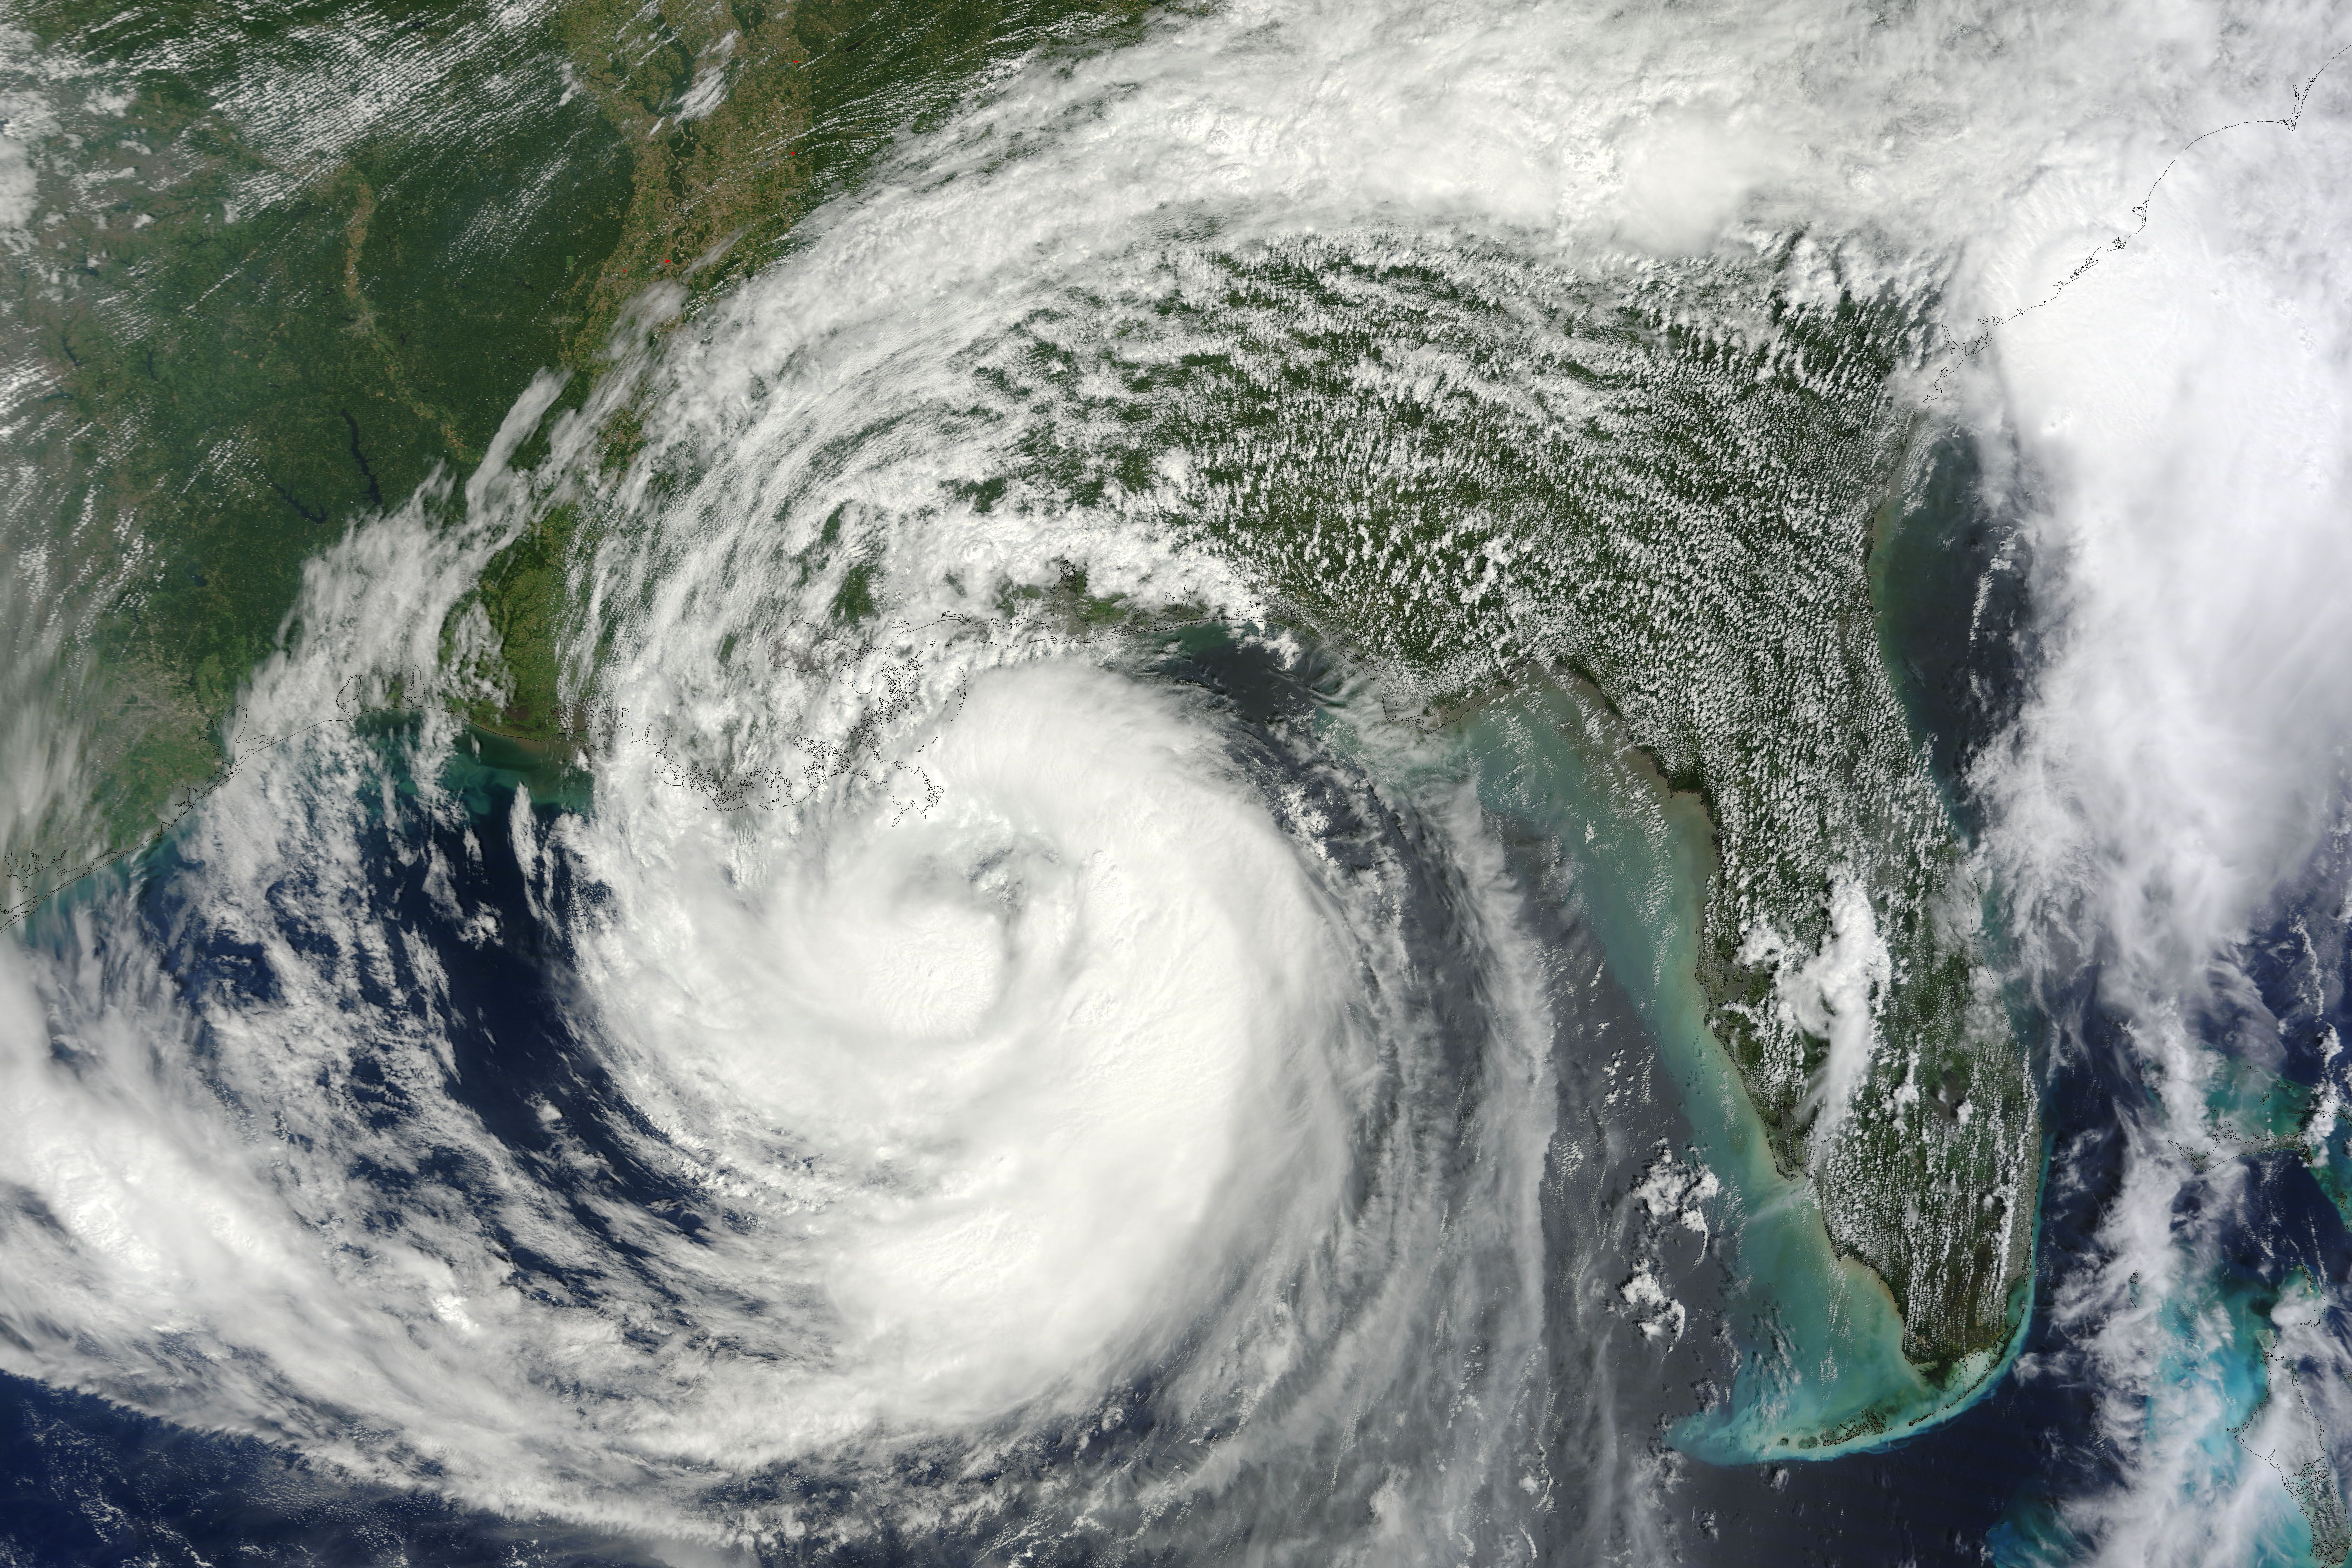 On August 28 2012 Tropical Storm Isaac Achieved Hurricane Force And Was Predicted To Make Landfall On The Gulf Coast Of Hurricane Season Nasa Earth Hurricane